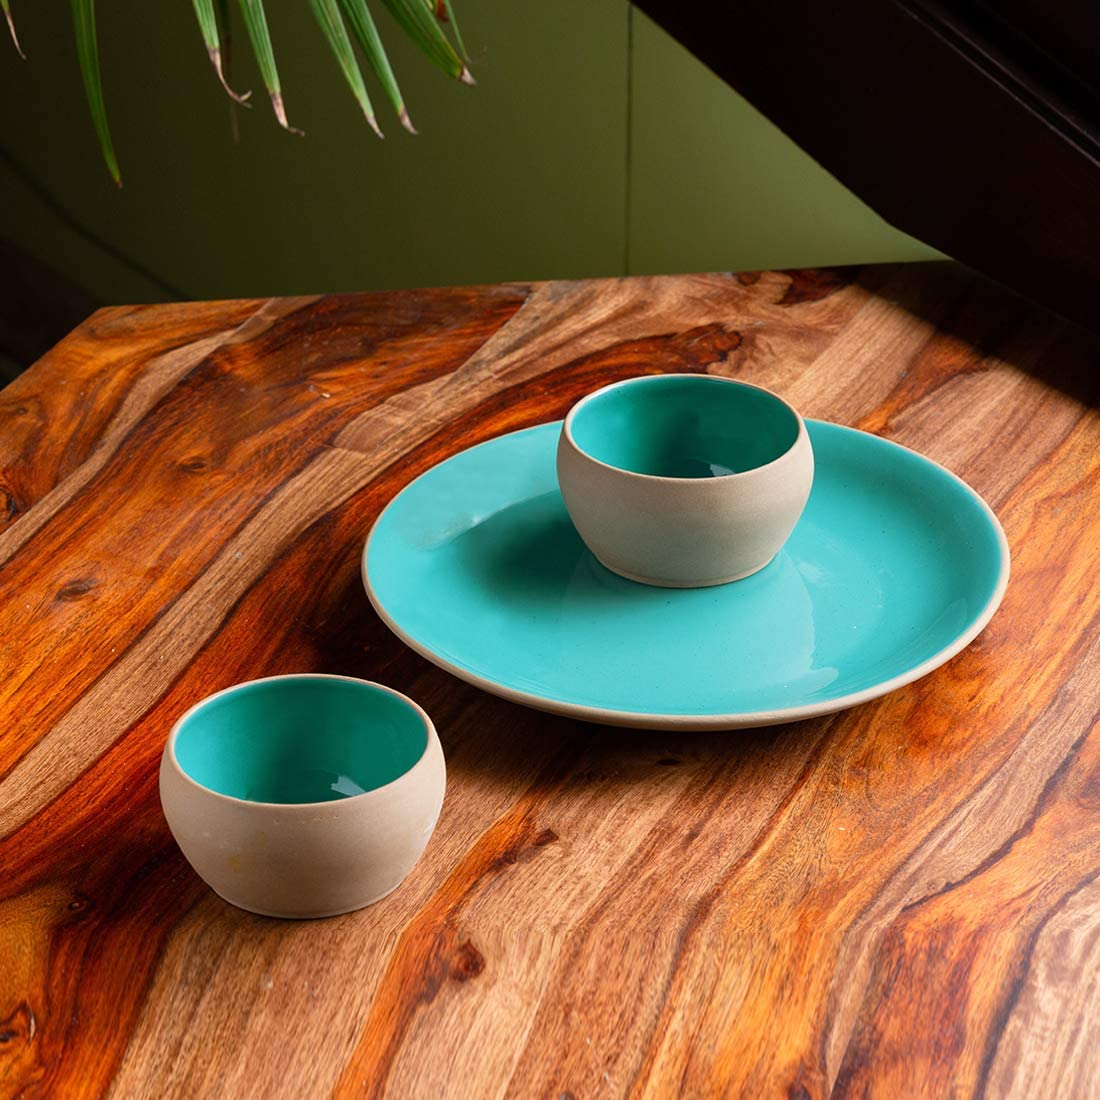 Sale Direct sale of manufacturer ExclusiveLane 'Earthen Turquoise' Hand Ceramic Glazed Plates For